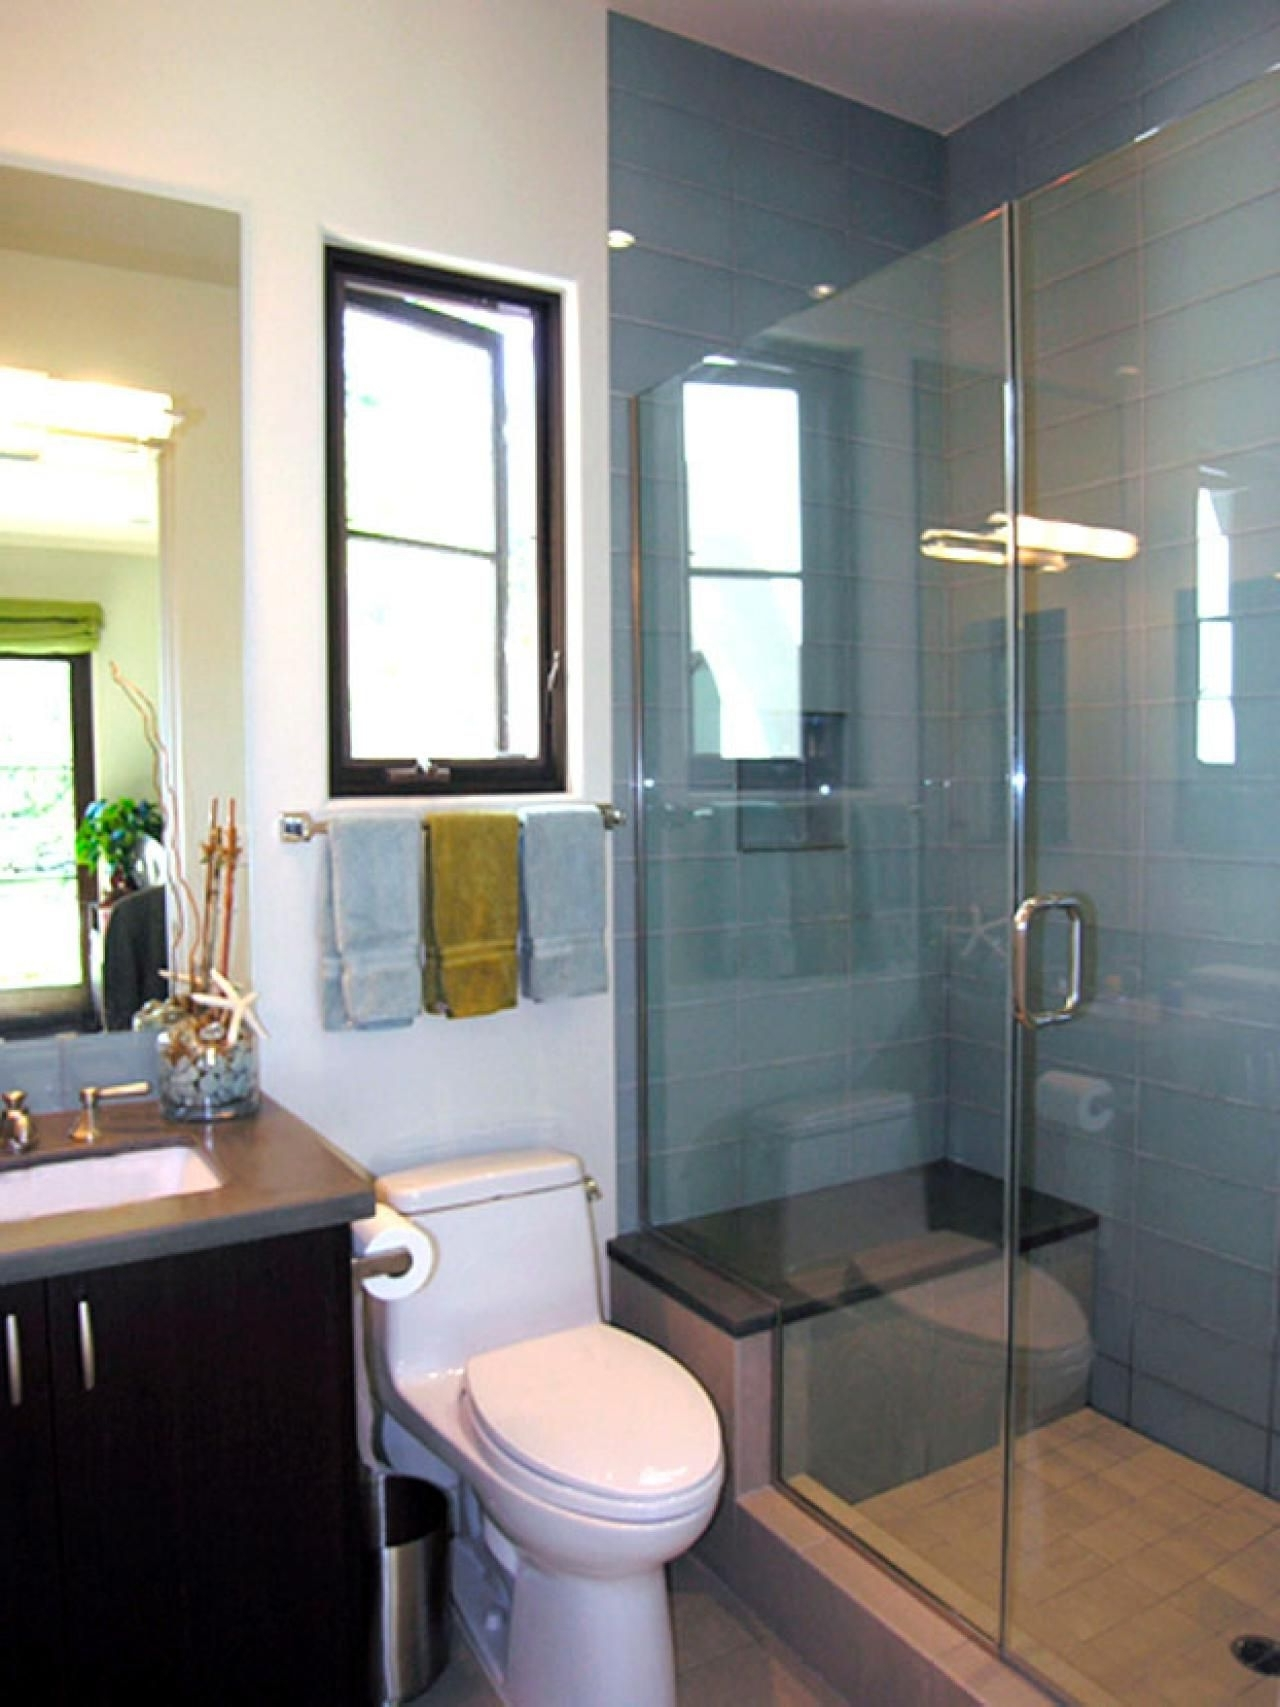 Before You Know It, Your Shower Or Tub Can Become A 20+ Quarter Bathroom Designs Inspirations